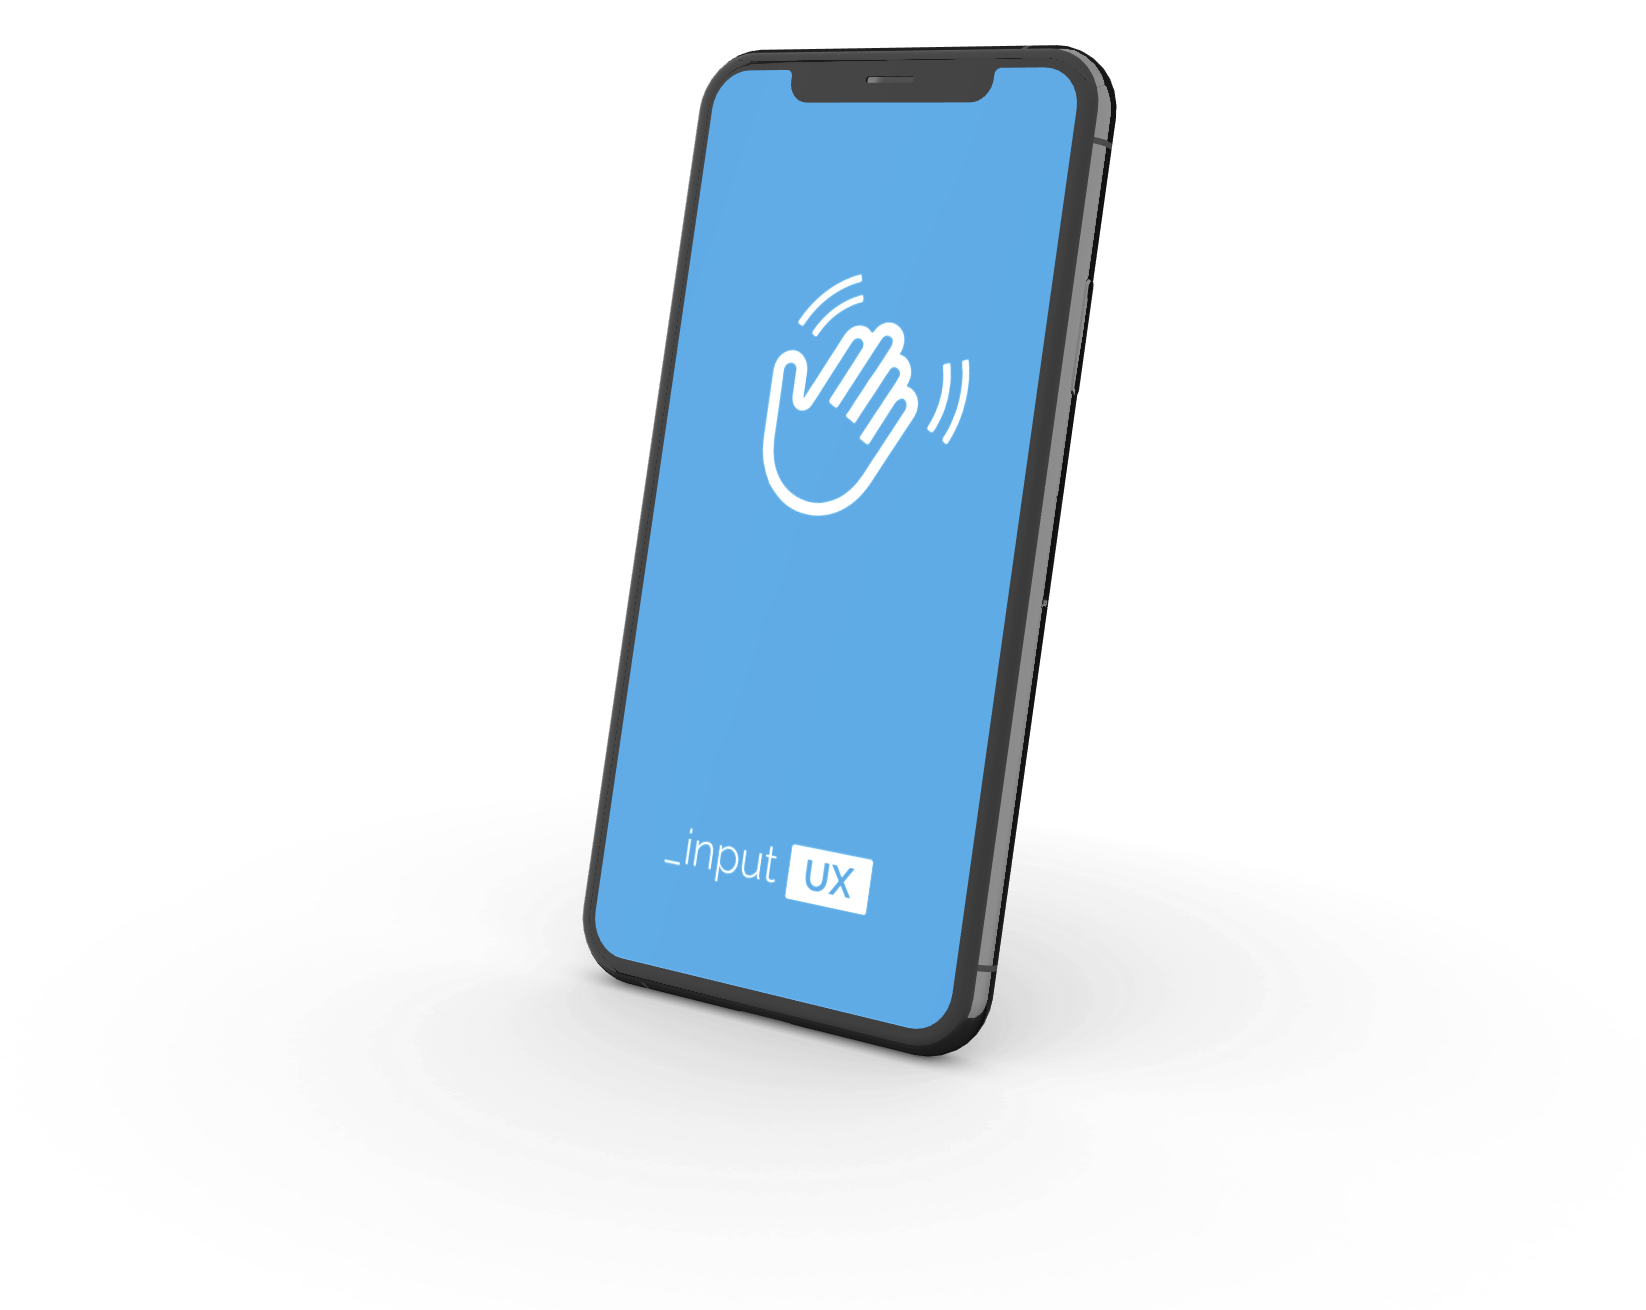 Mobile phone with waving hand icon